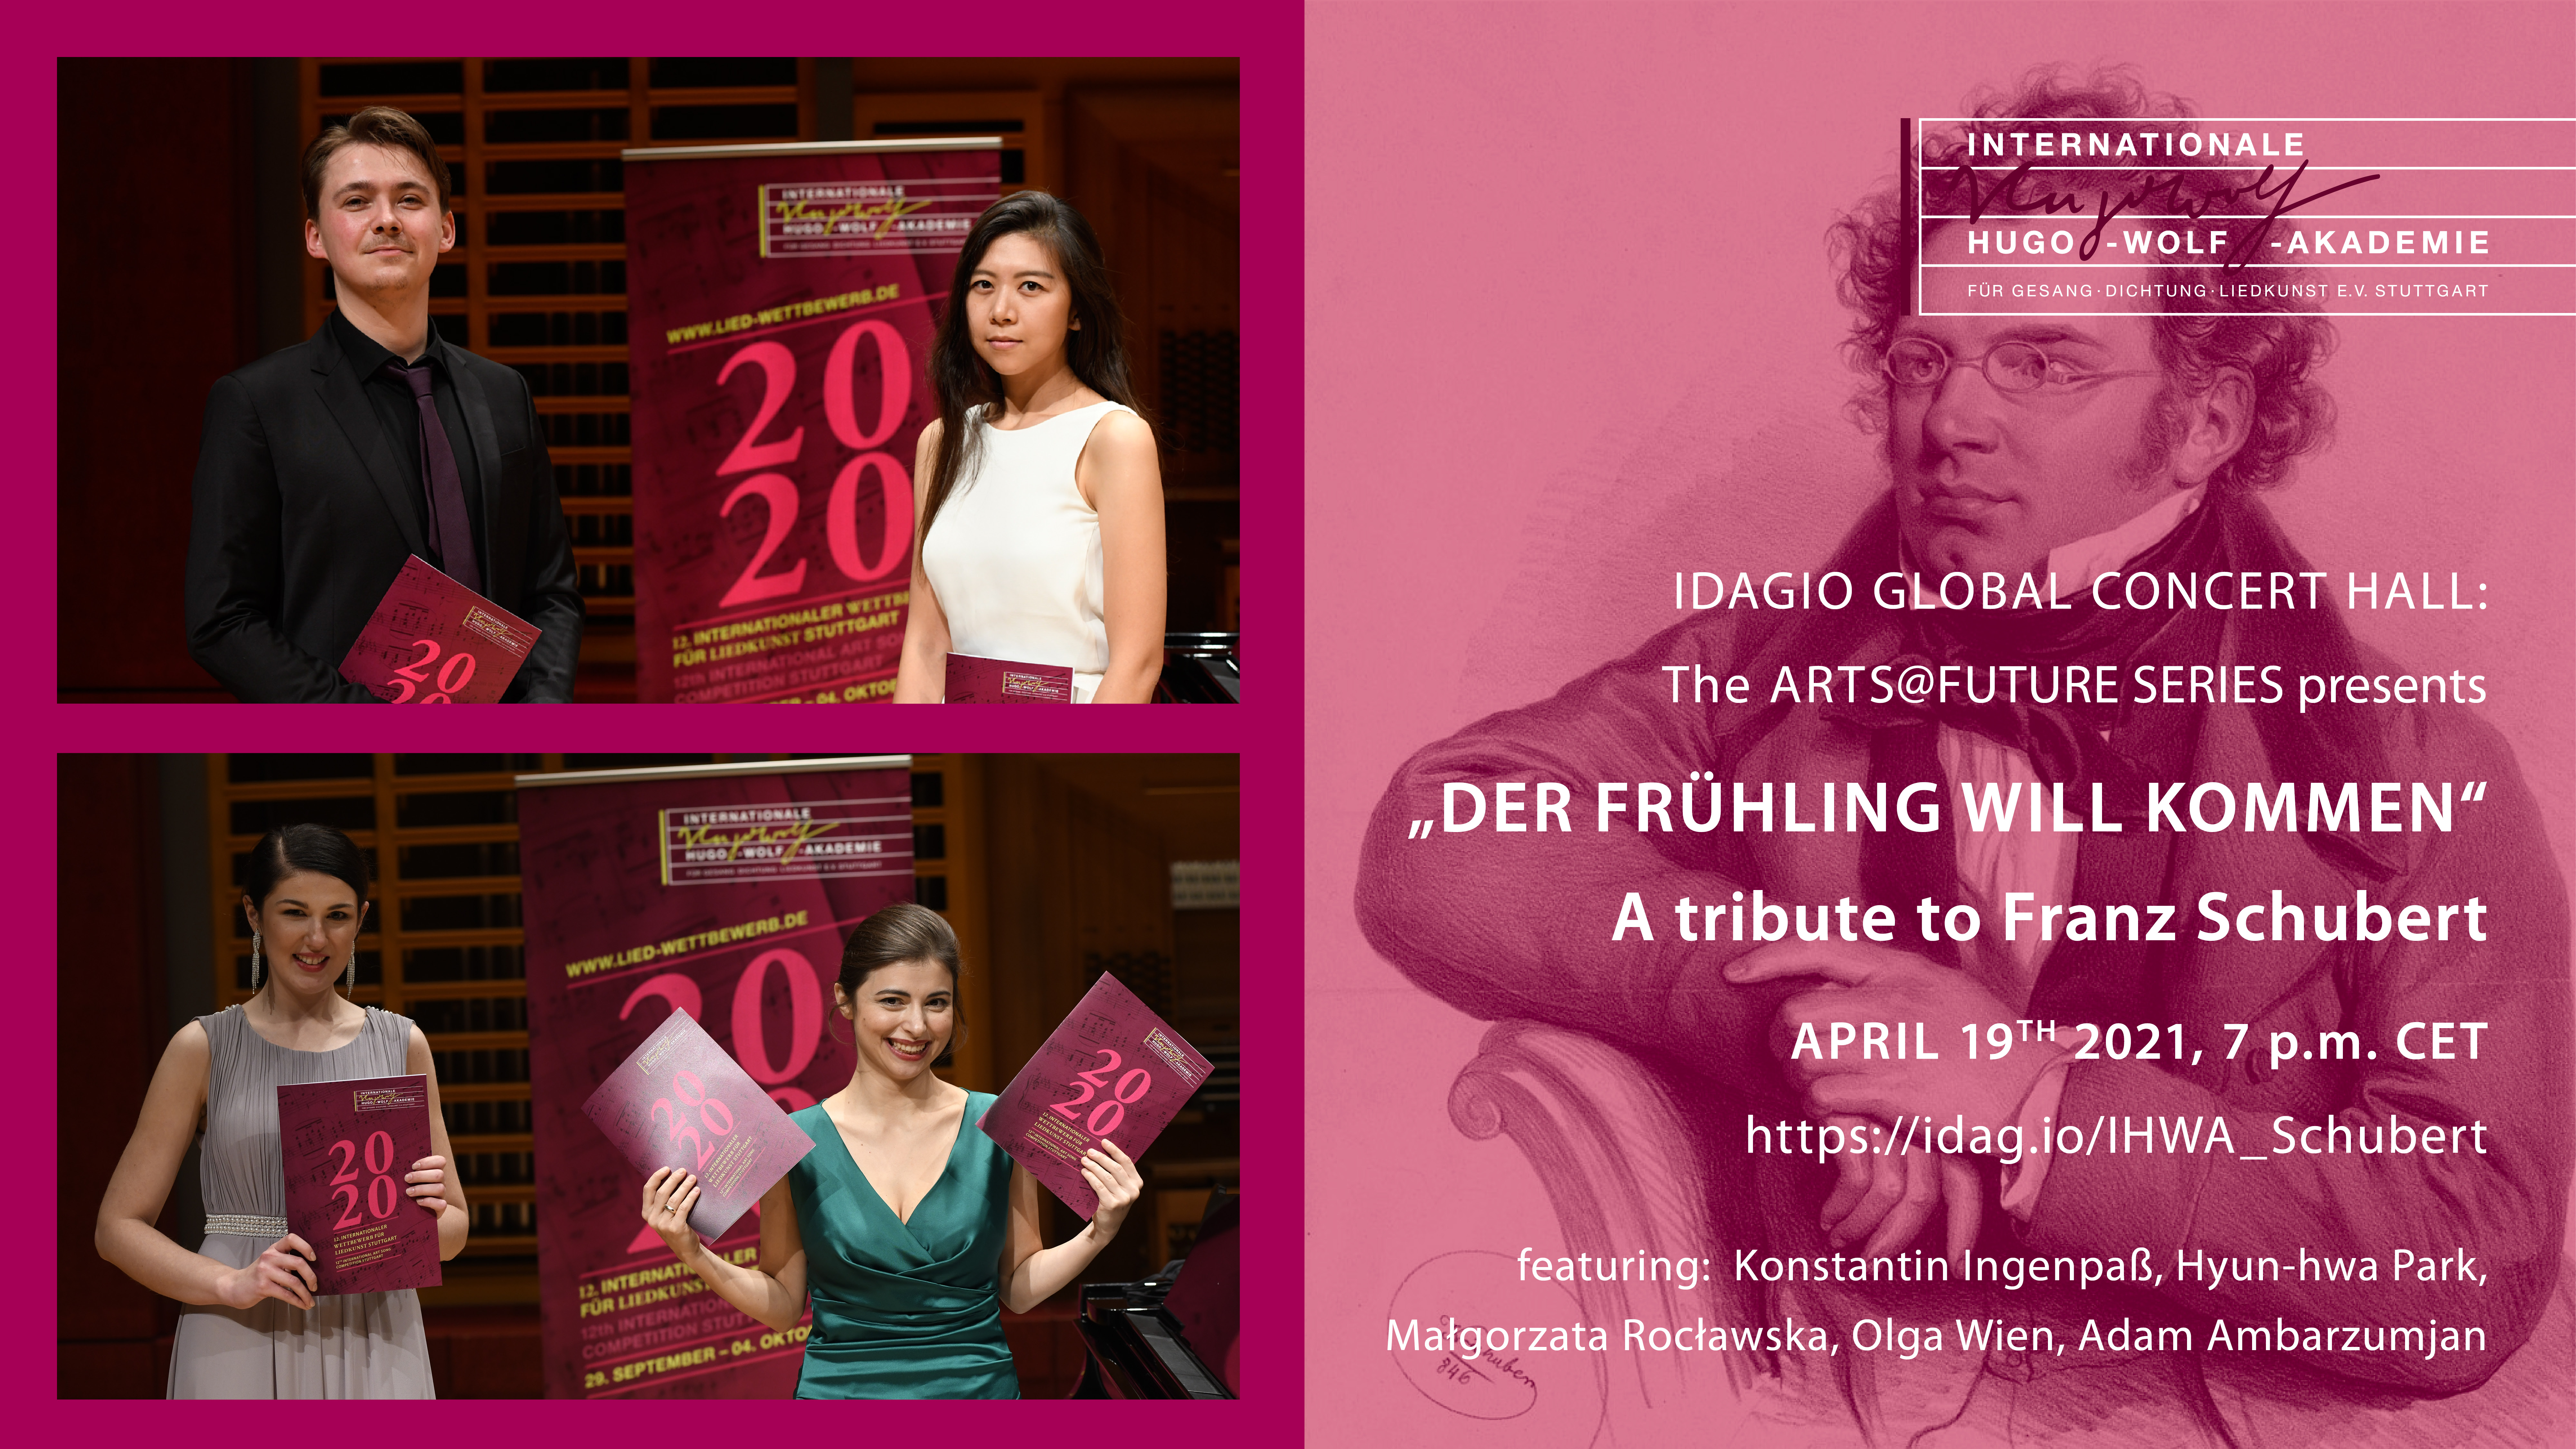 IDAGIO Global Concert Hall - Schubert Special